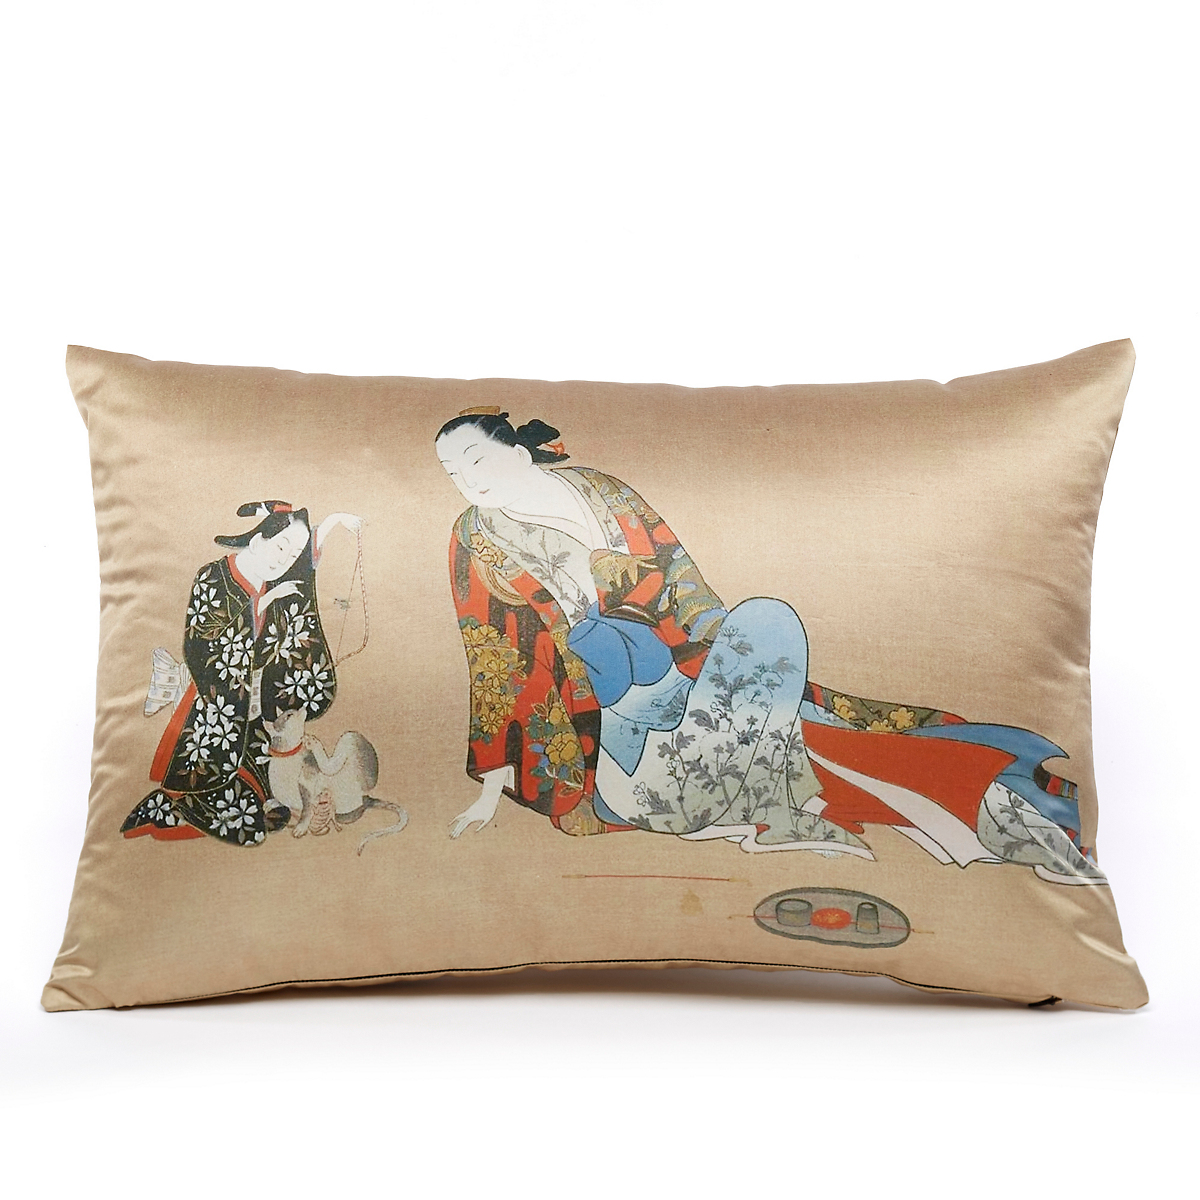 Geishas At Rest Pillow